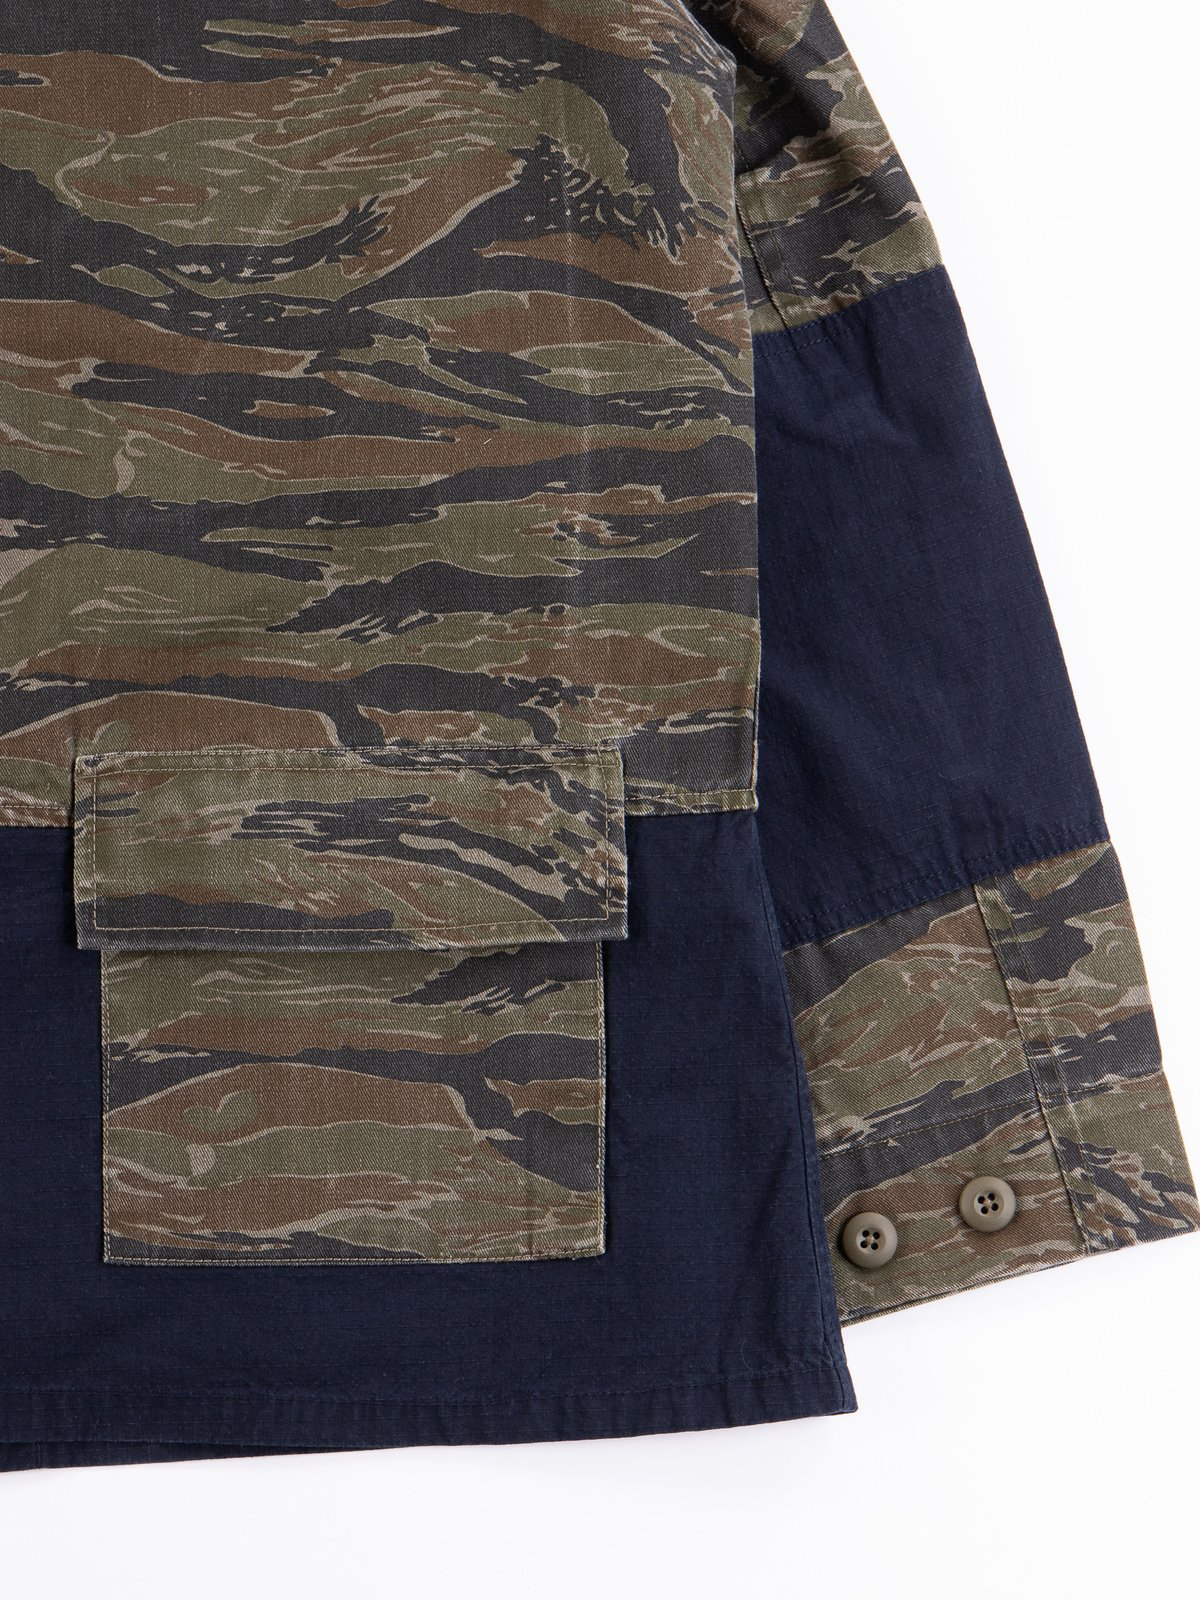 Reworks Camo/Navy Field Jacket - Image 7